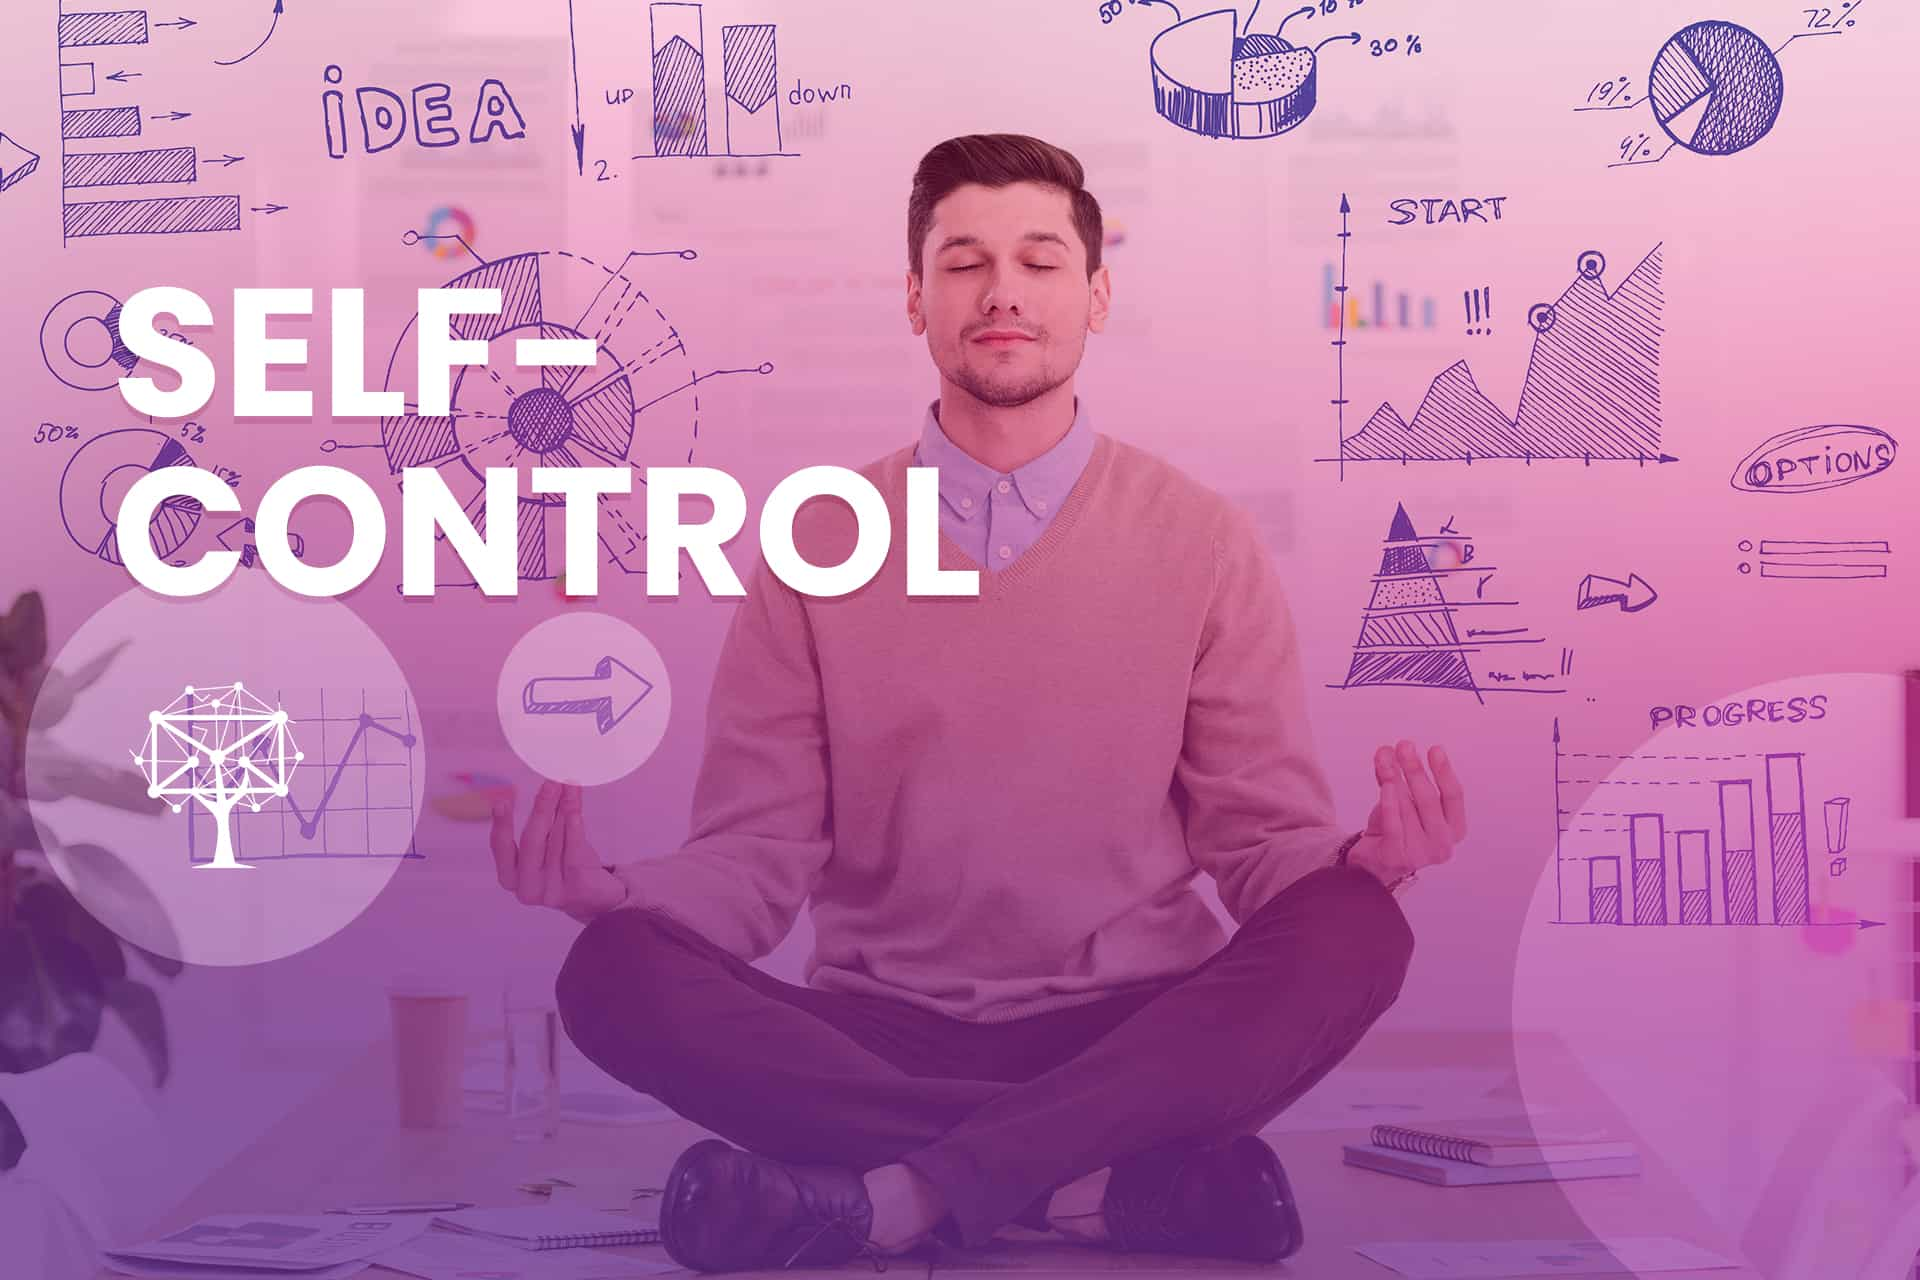 Customer service starts with self-control